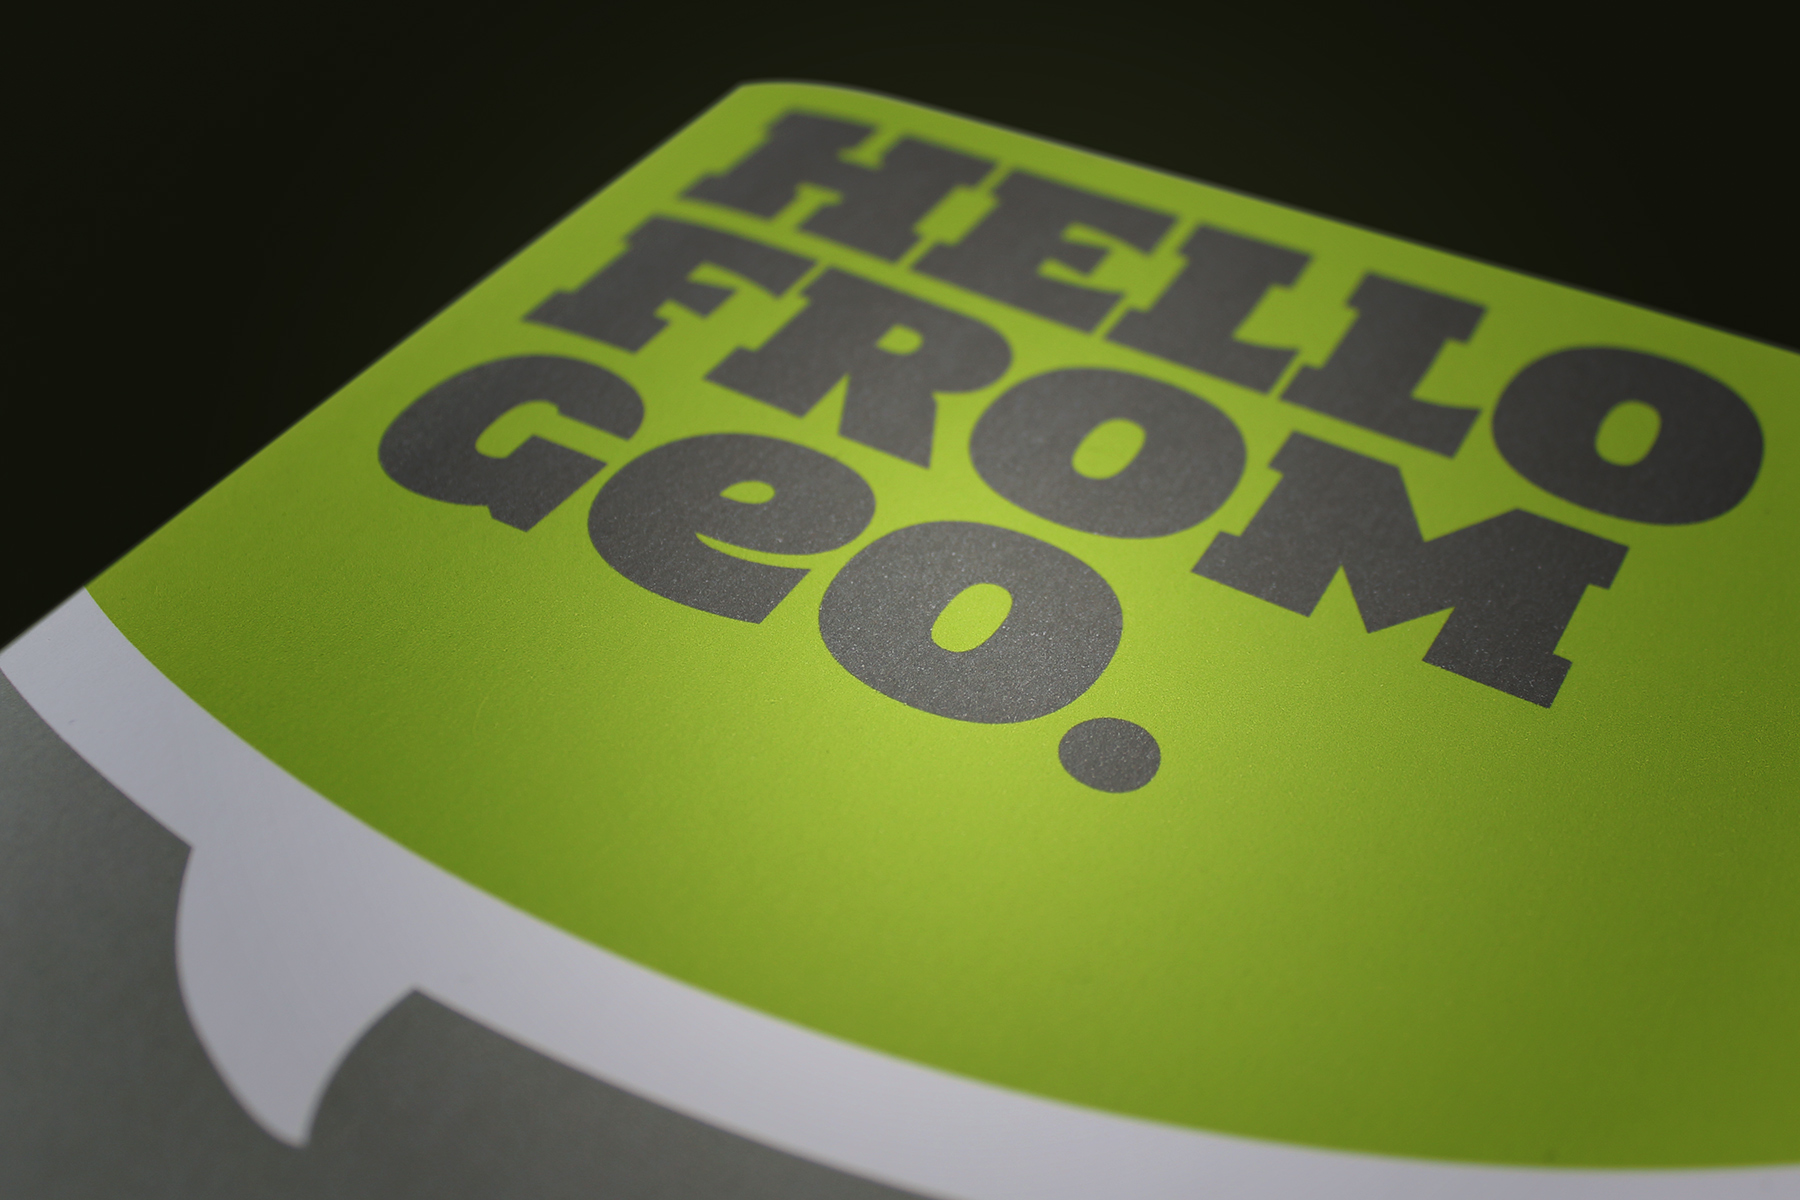 Geo provide dedicated fibre based data services in the UK.